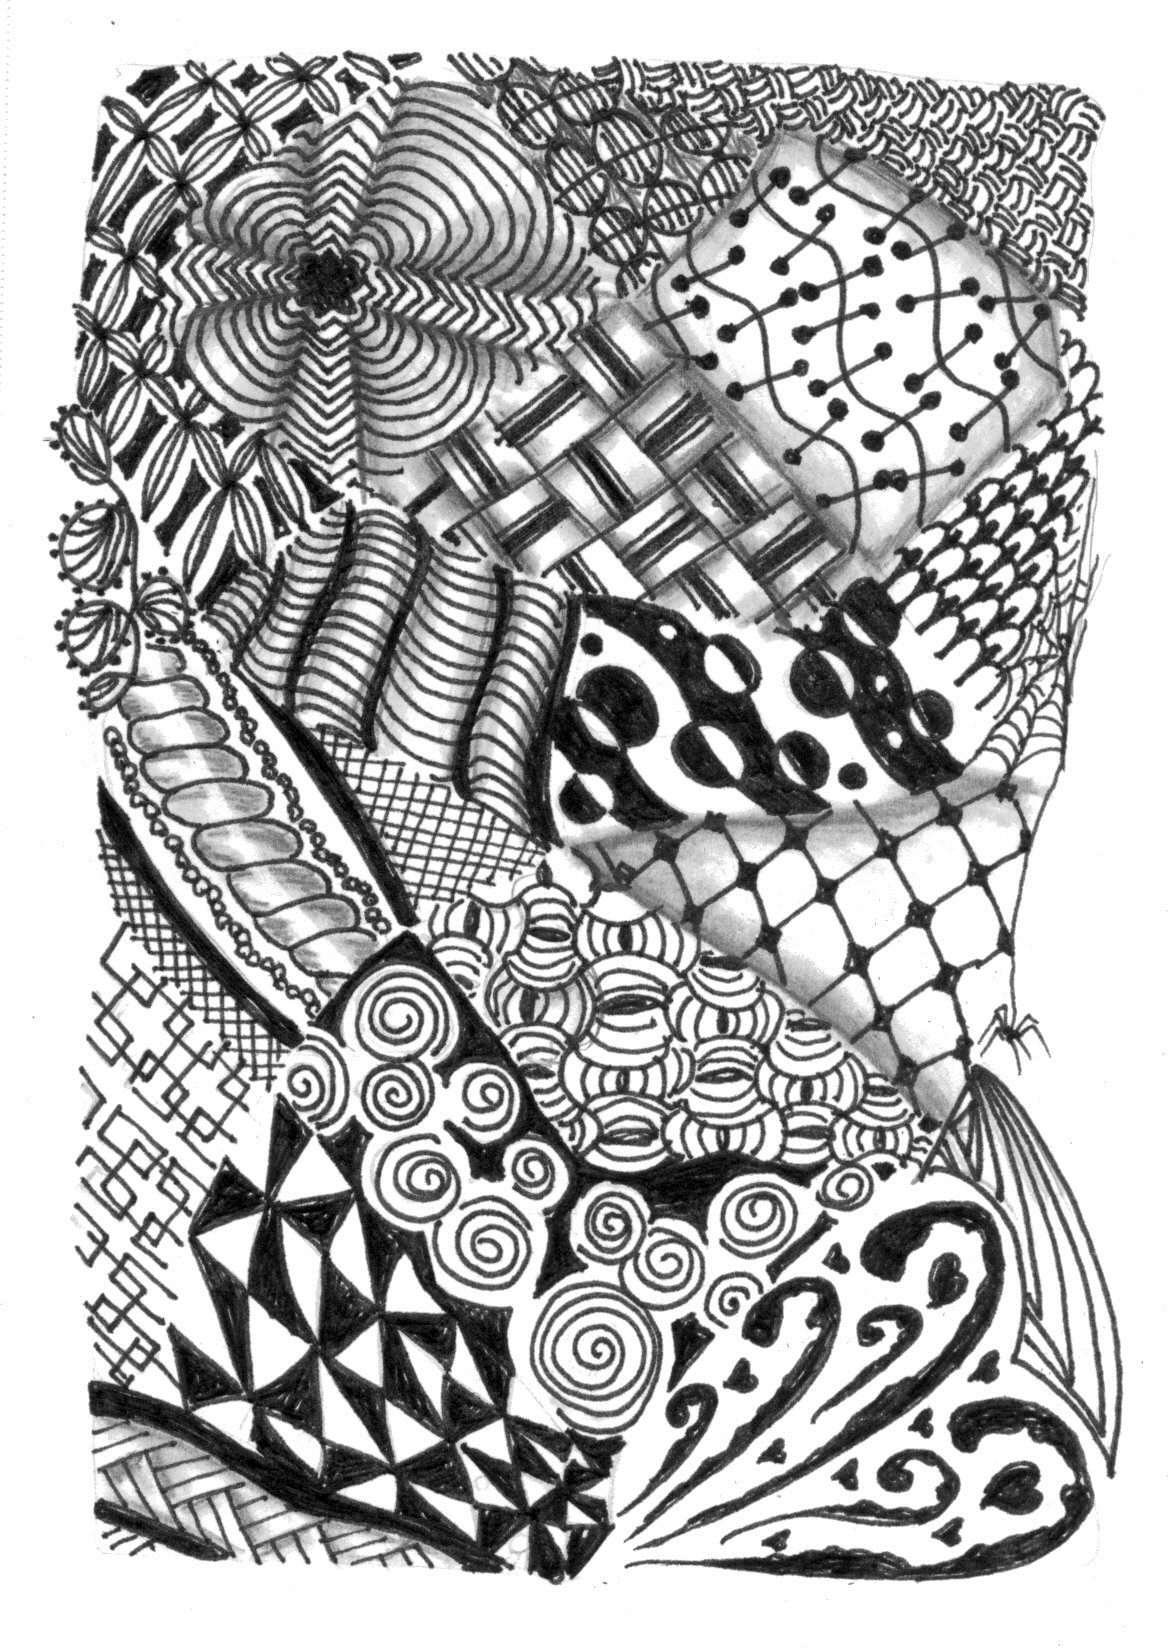 10 Best Images of Zentangle Animal Patterns Printable - Zentangle Animal Drawings, Printable ...